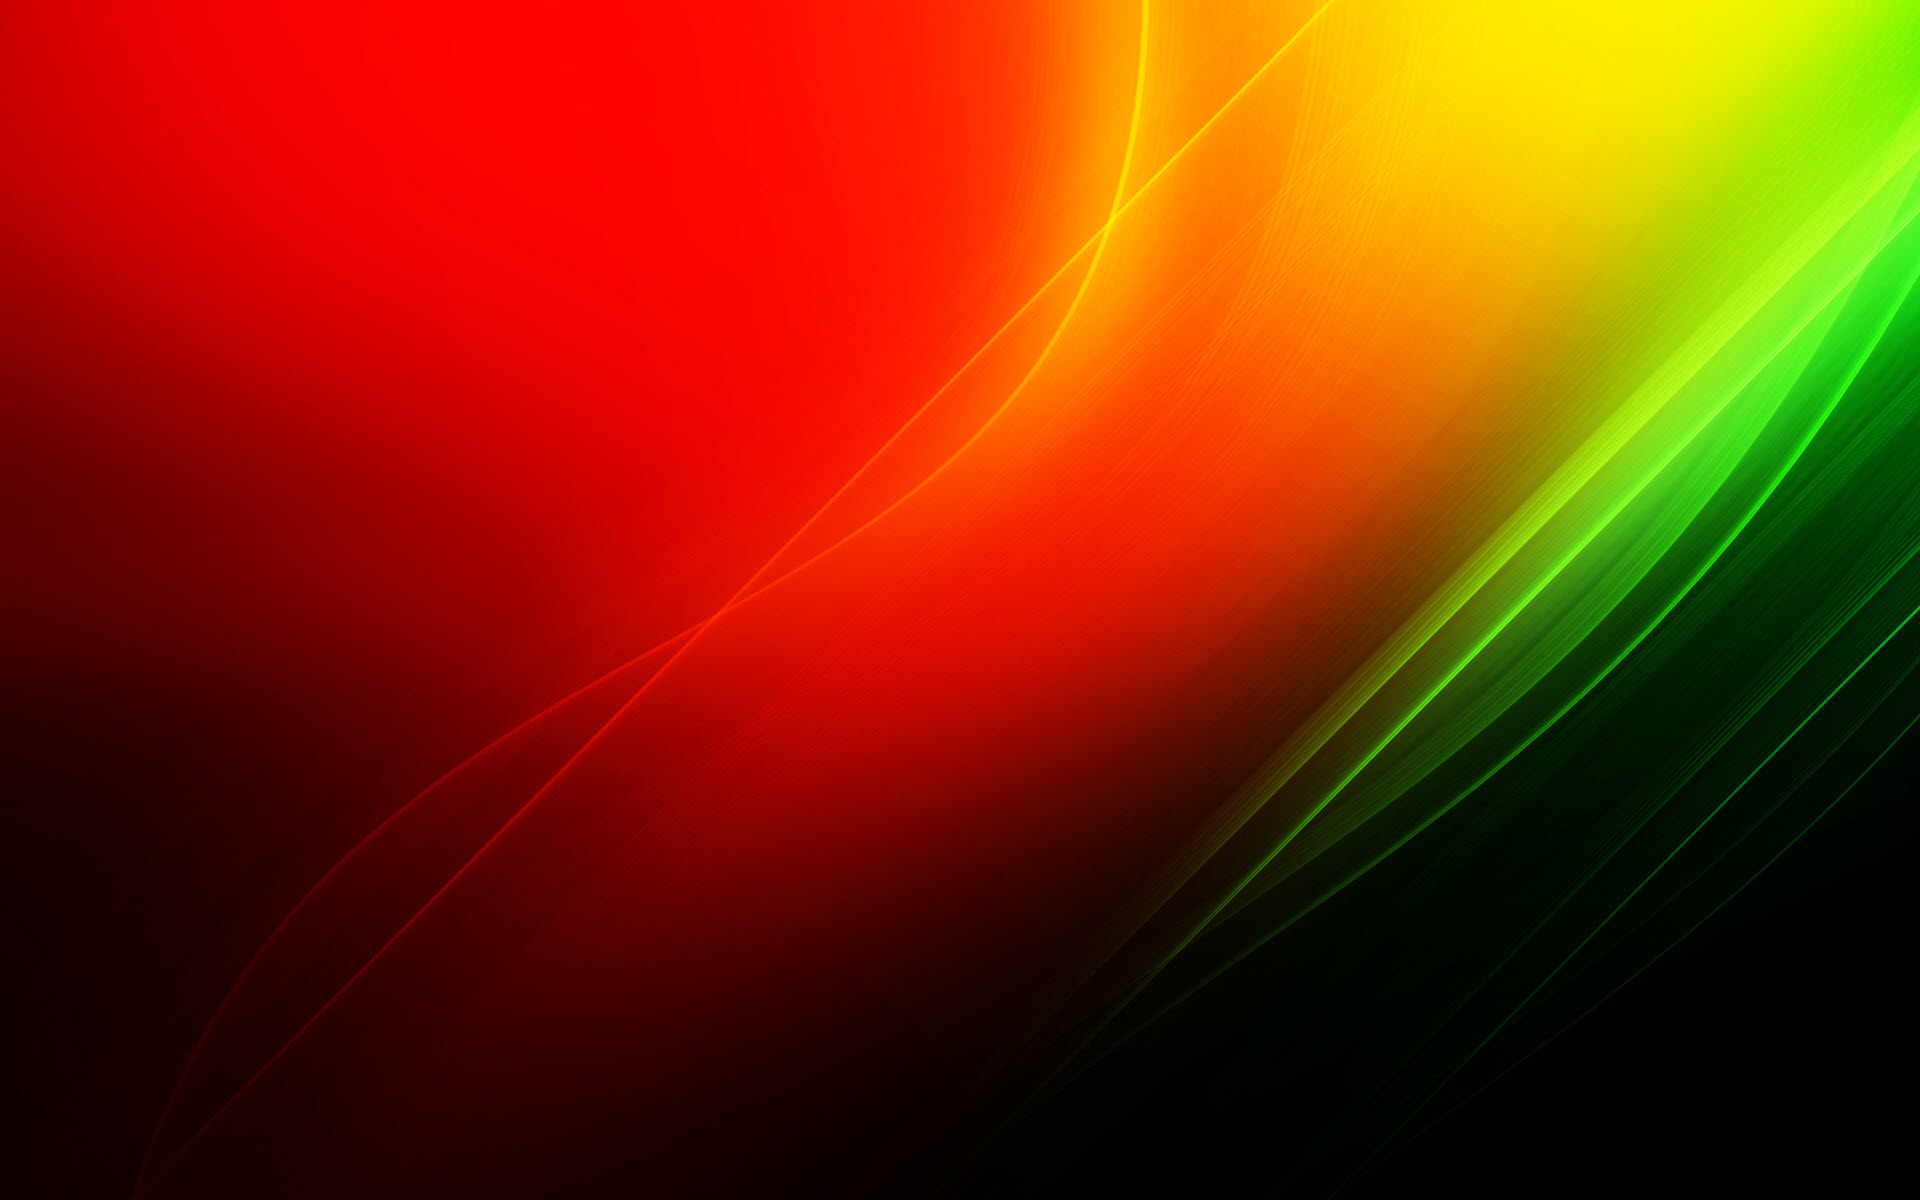 Abstract Red Yellow And Green Colors